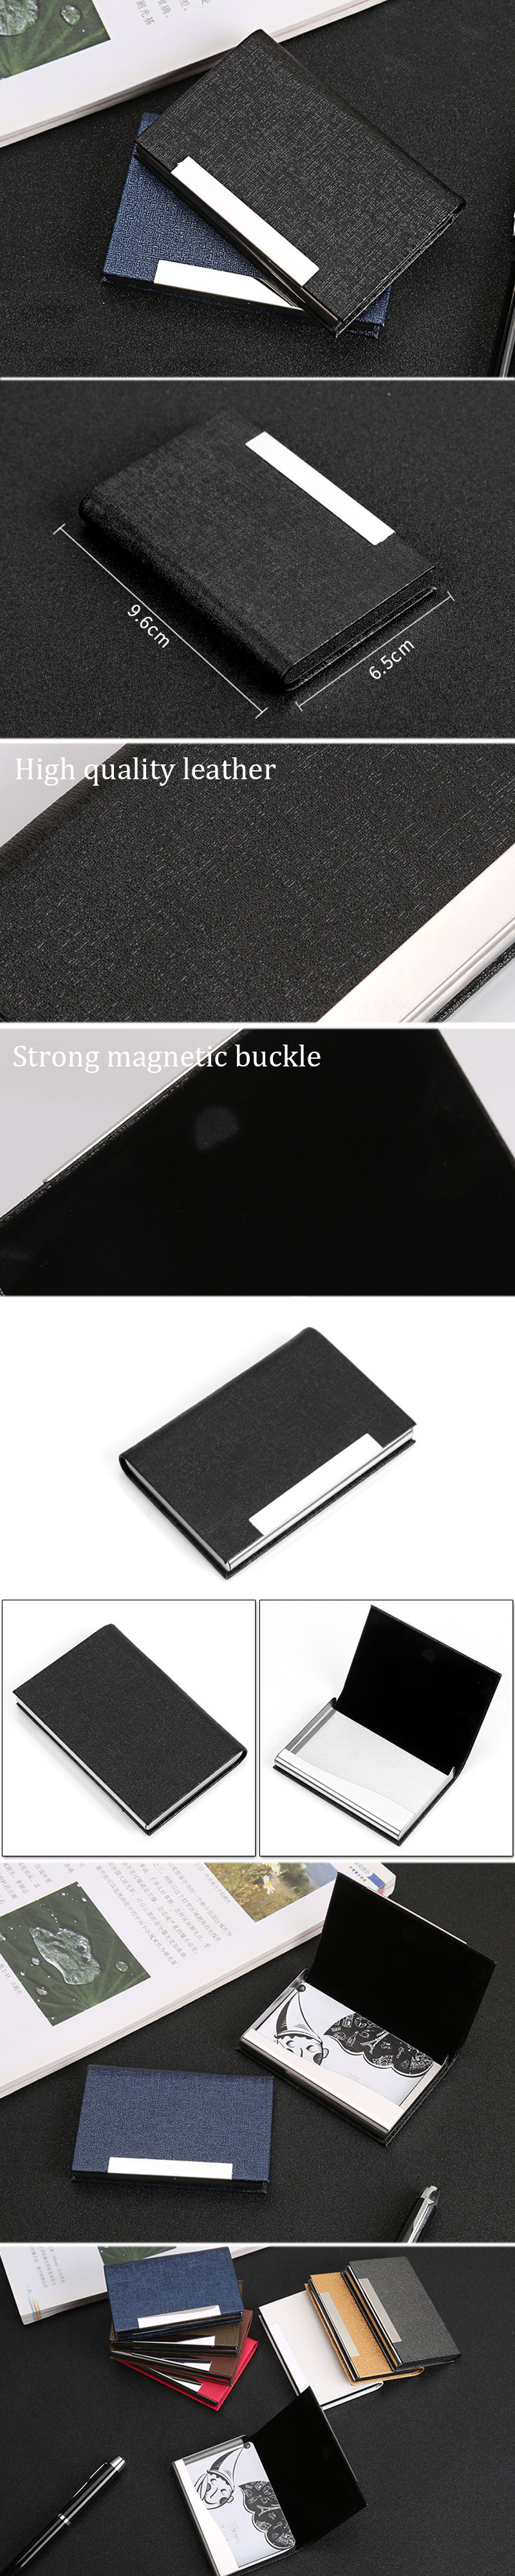 IPRee® Stainless Steel Card Holder Credit Card Case Portable ID Card Storage Box Business Travel